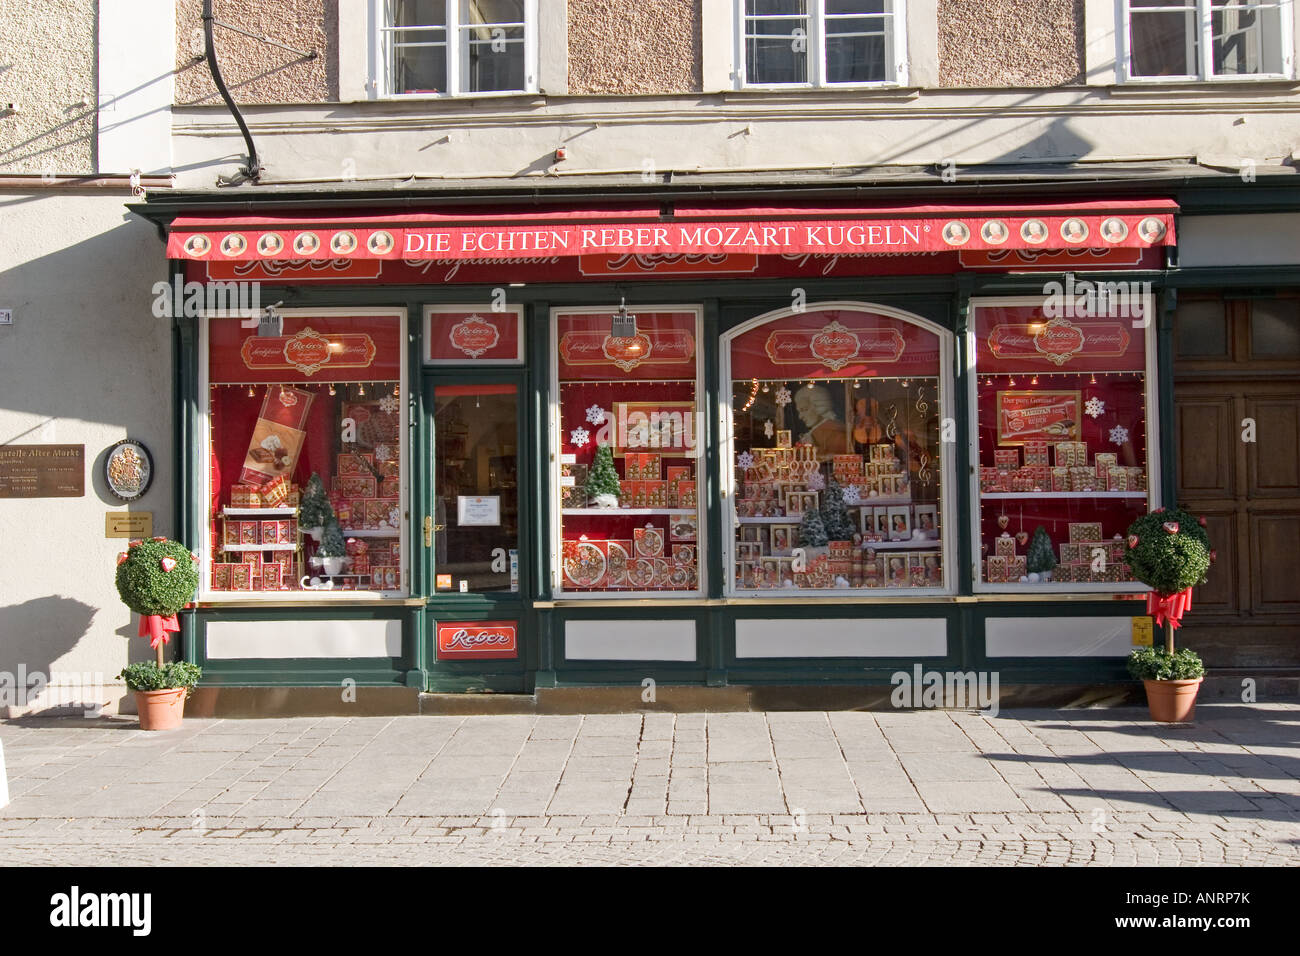 Mozart ball shop - Stock Image